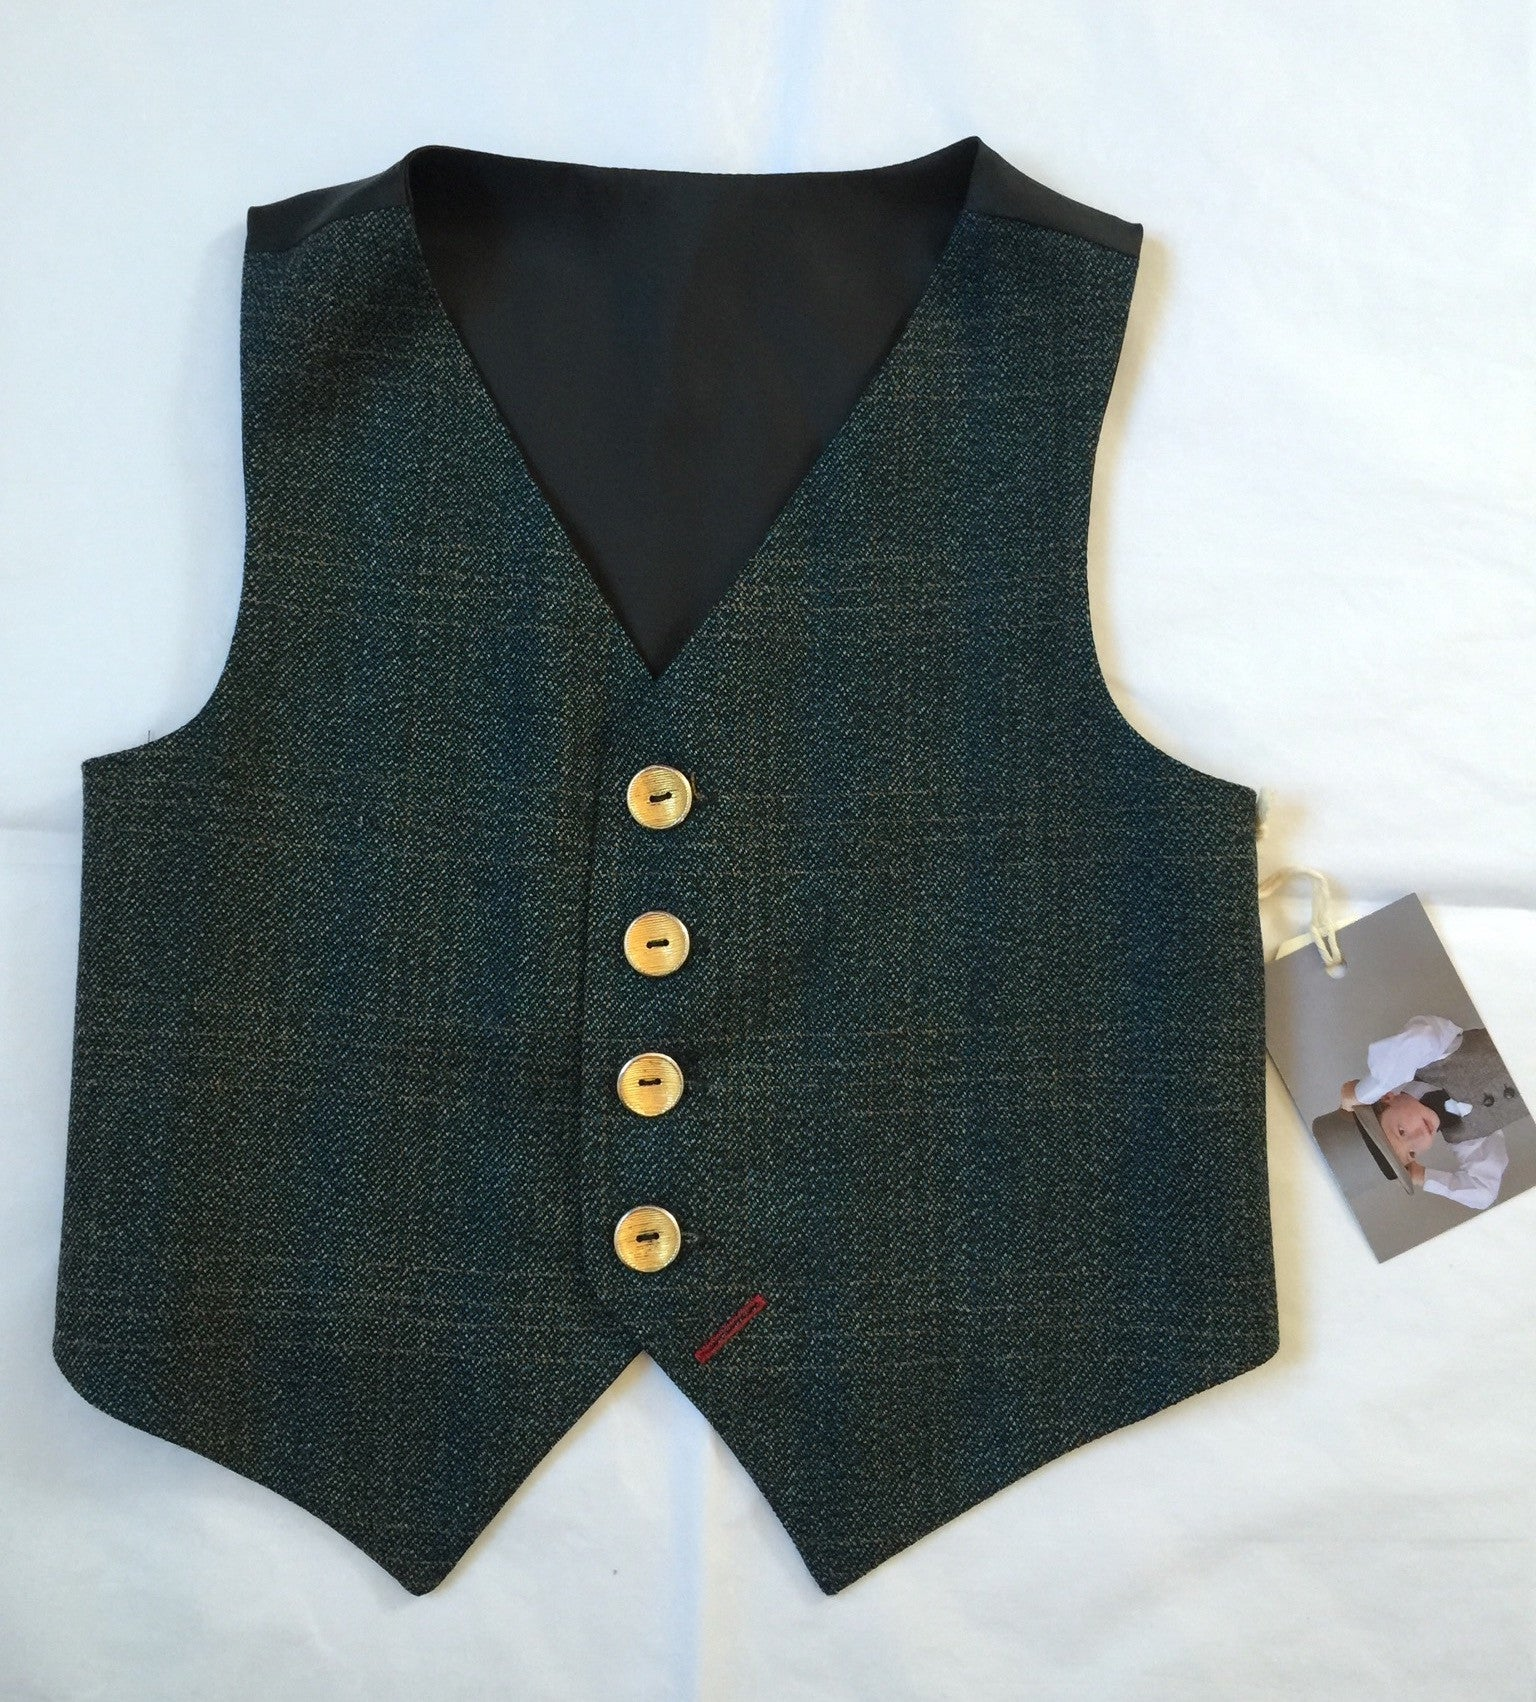 Sample Boys waistcoat 5-6 years in a blue, green and brown check 'Emmett Brown'